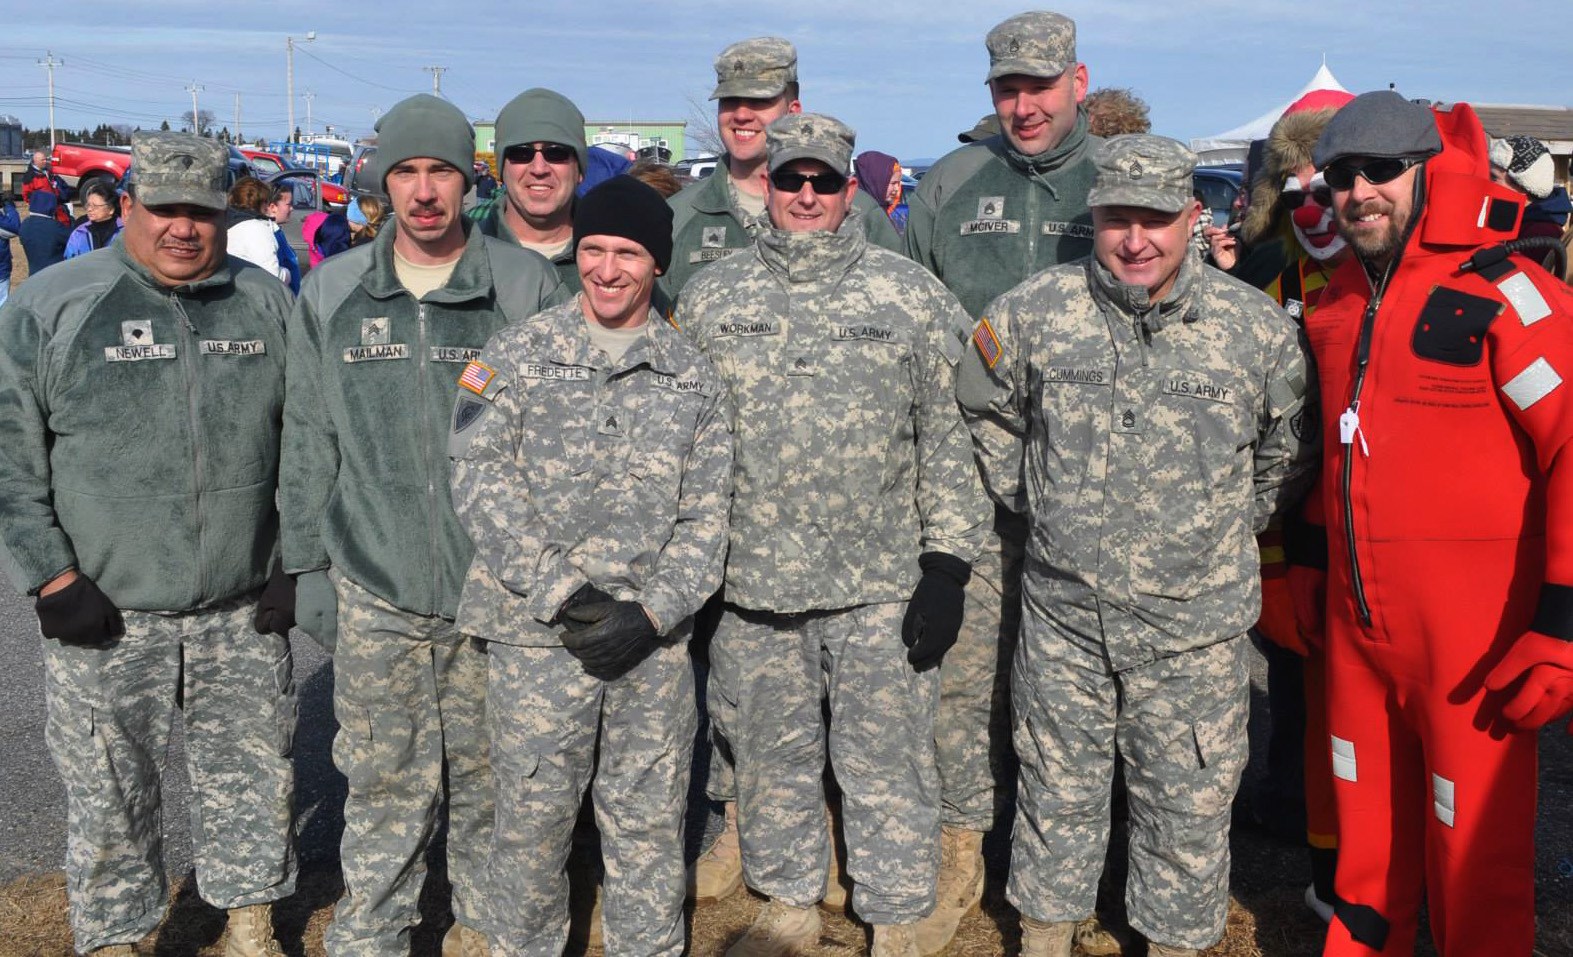 Miliary personnel at the annual polar bear dip pose for a picture.